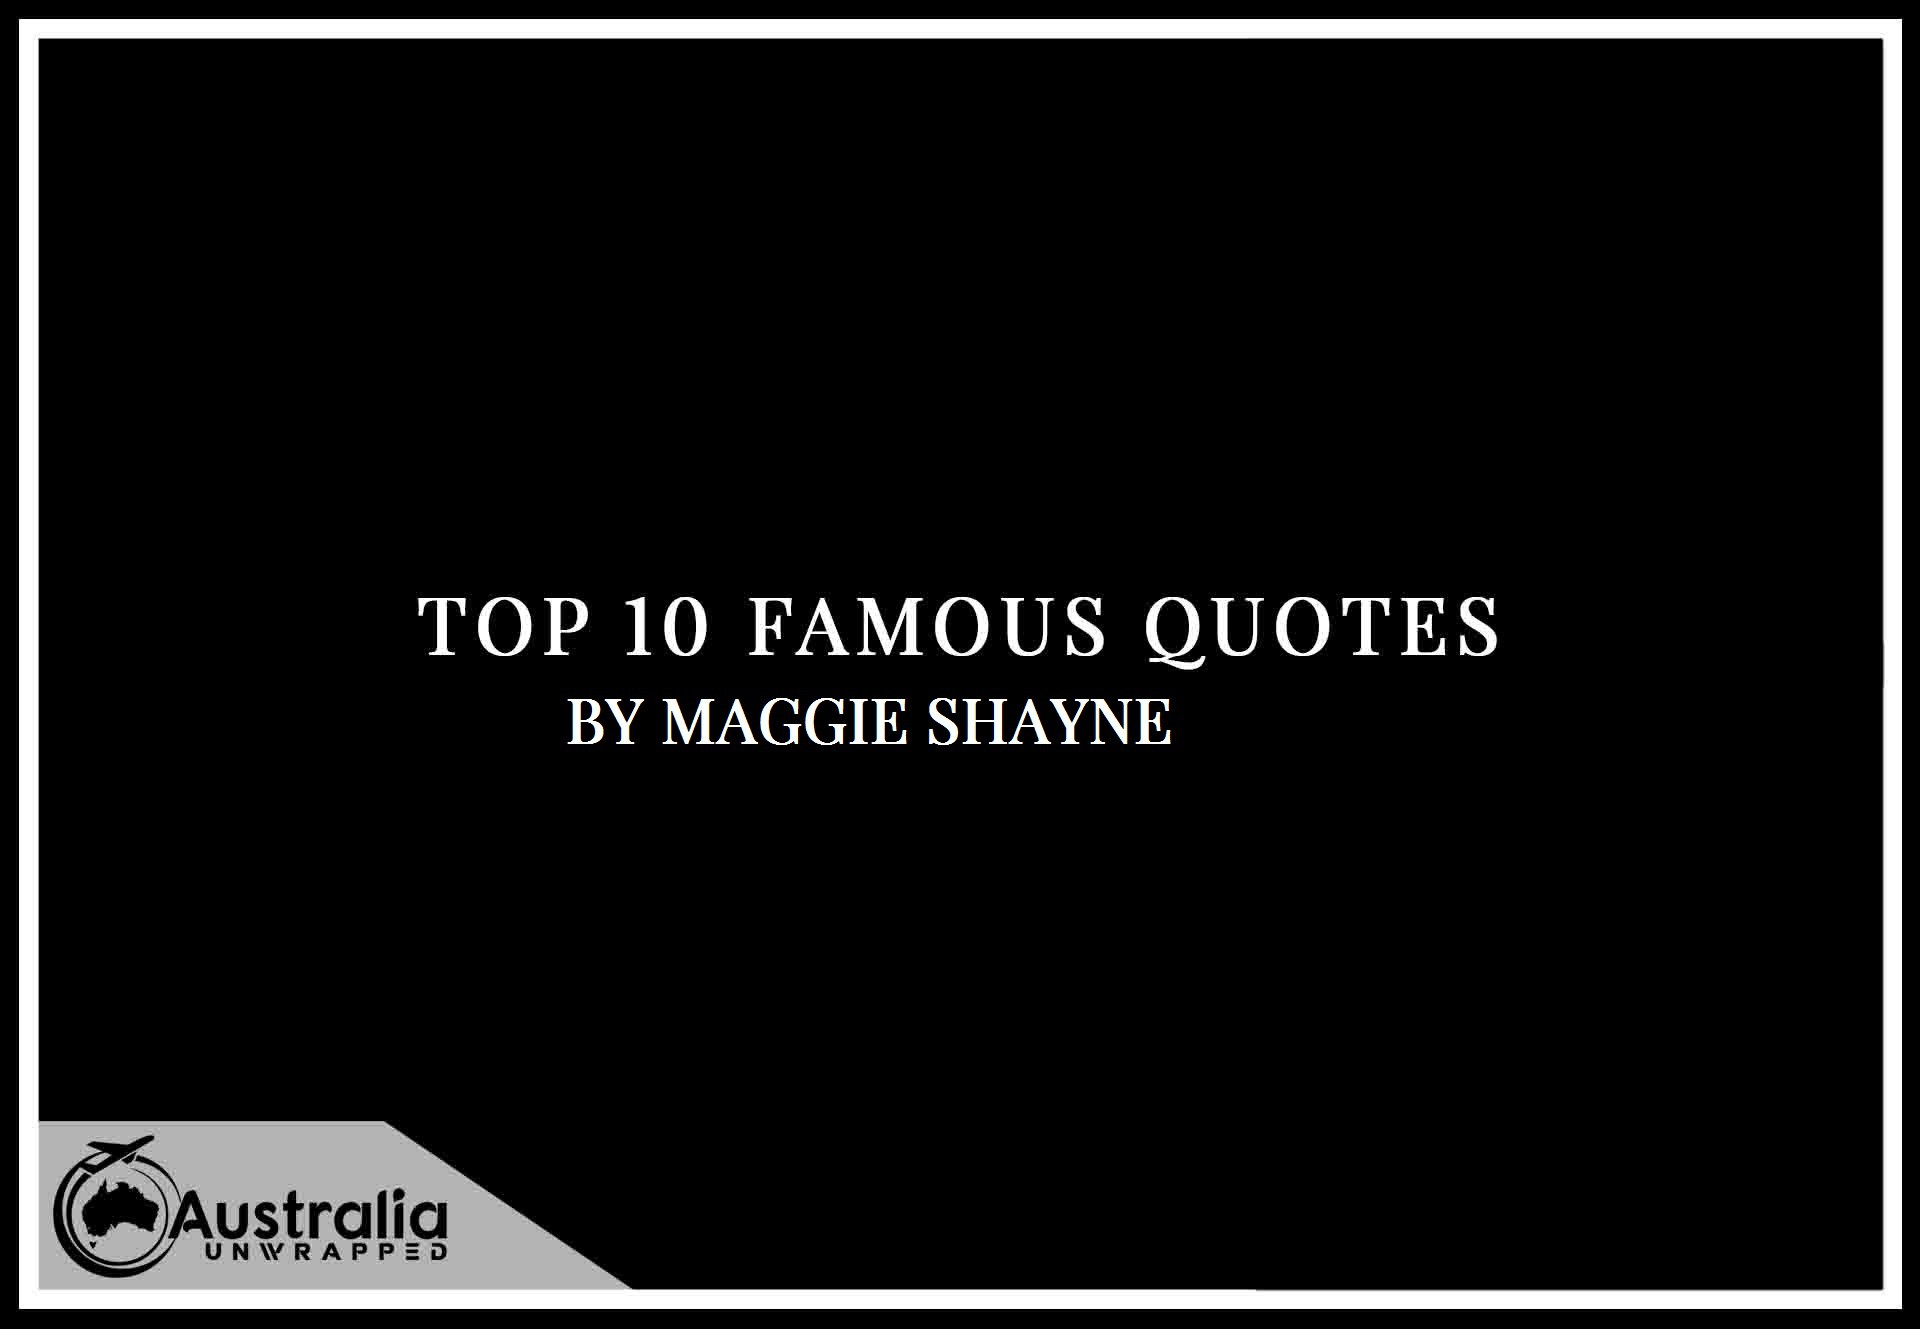 Maggie Shayne's Top 10 Popular and Famous Quotes